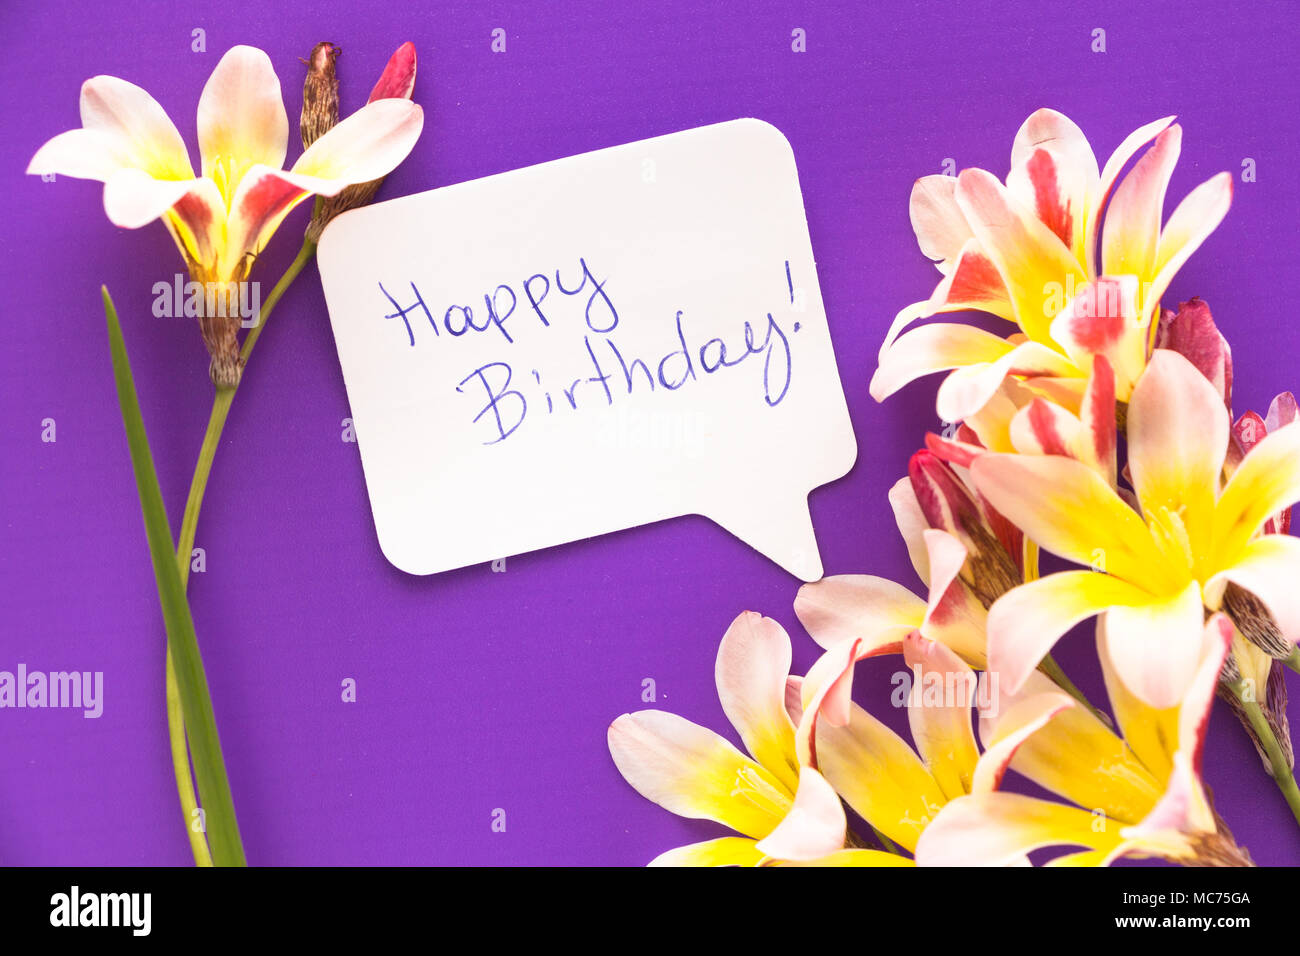 Note In Shape Of Heart With Words Happy Birthday With Flowers On